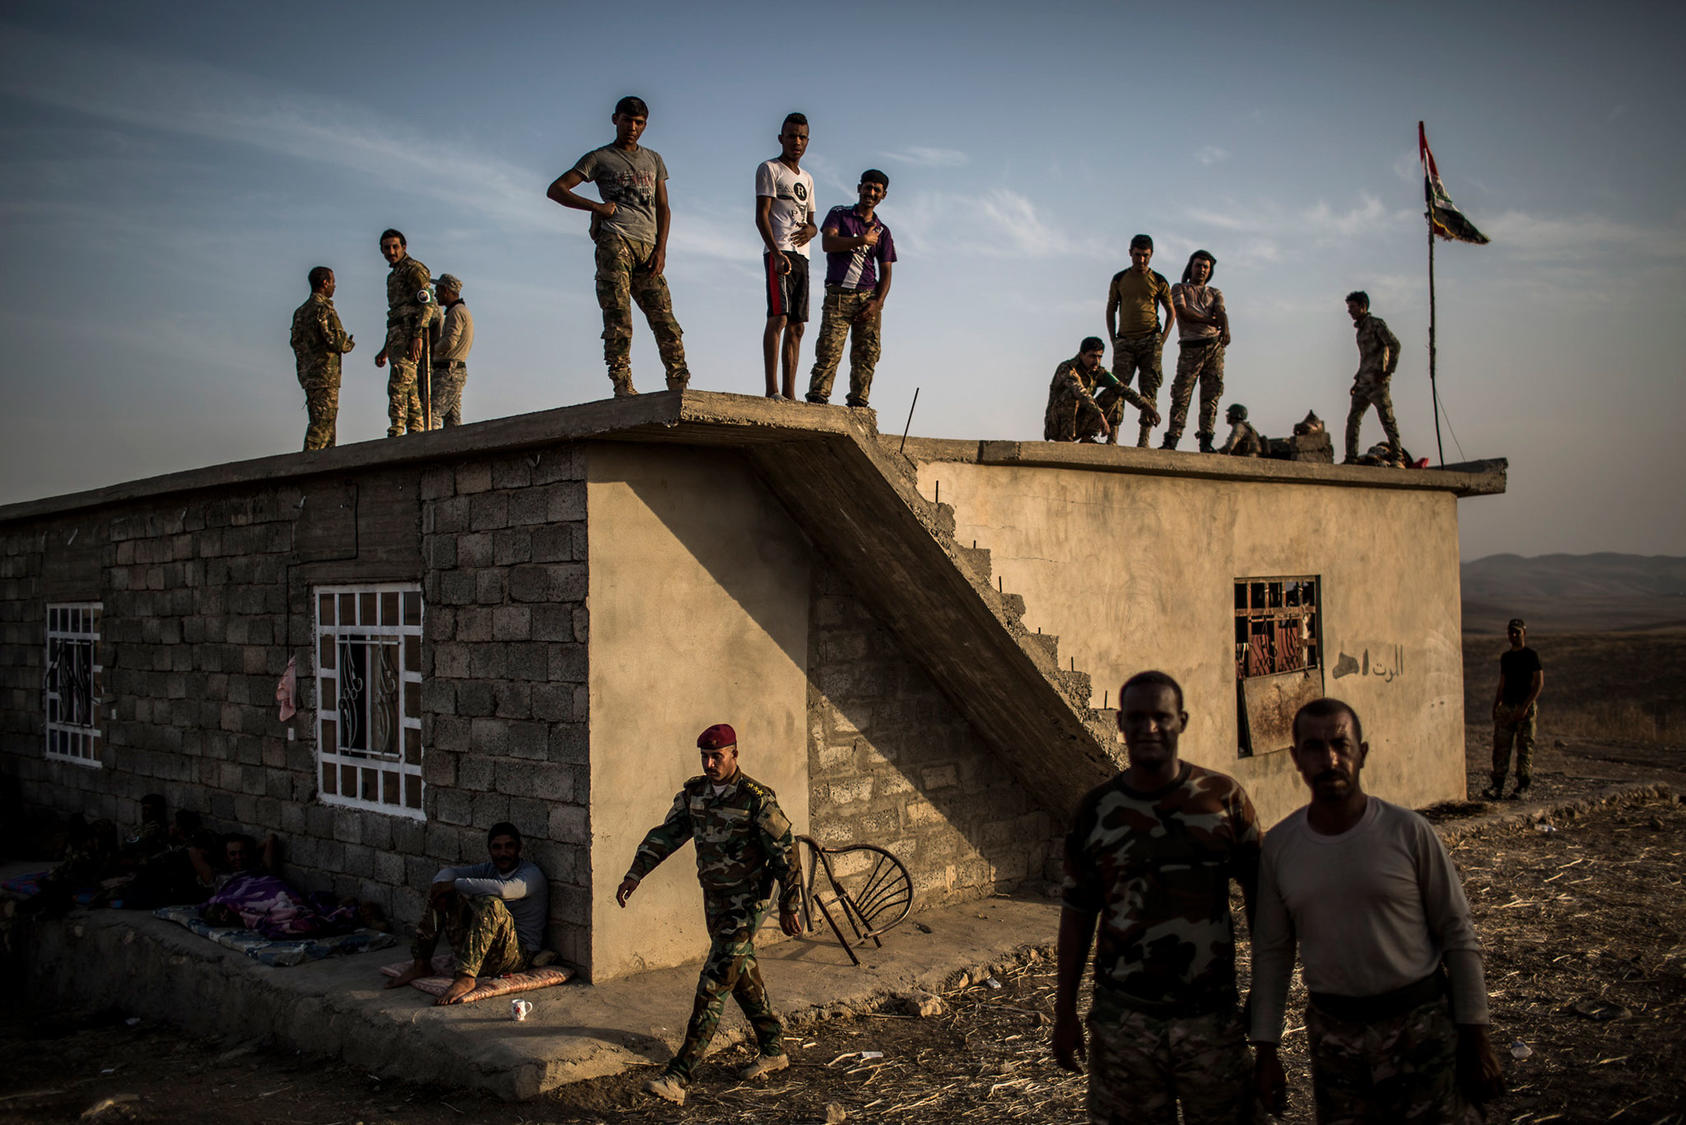 Fighters, who joined a militia to help liberate the city of Mosul from the Islamic State, wait at their base near the Mosul Dam near Karaj, Iraq, Oct. 18, 2016. (Bryan Denton/The New York Times)